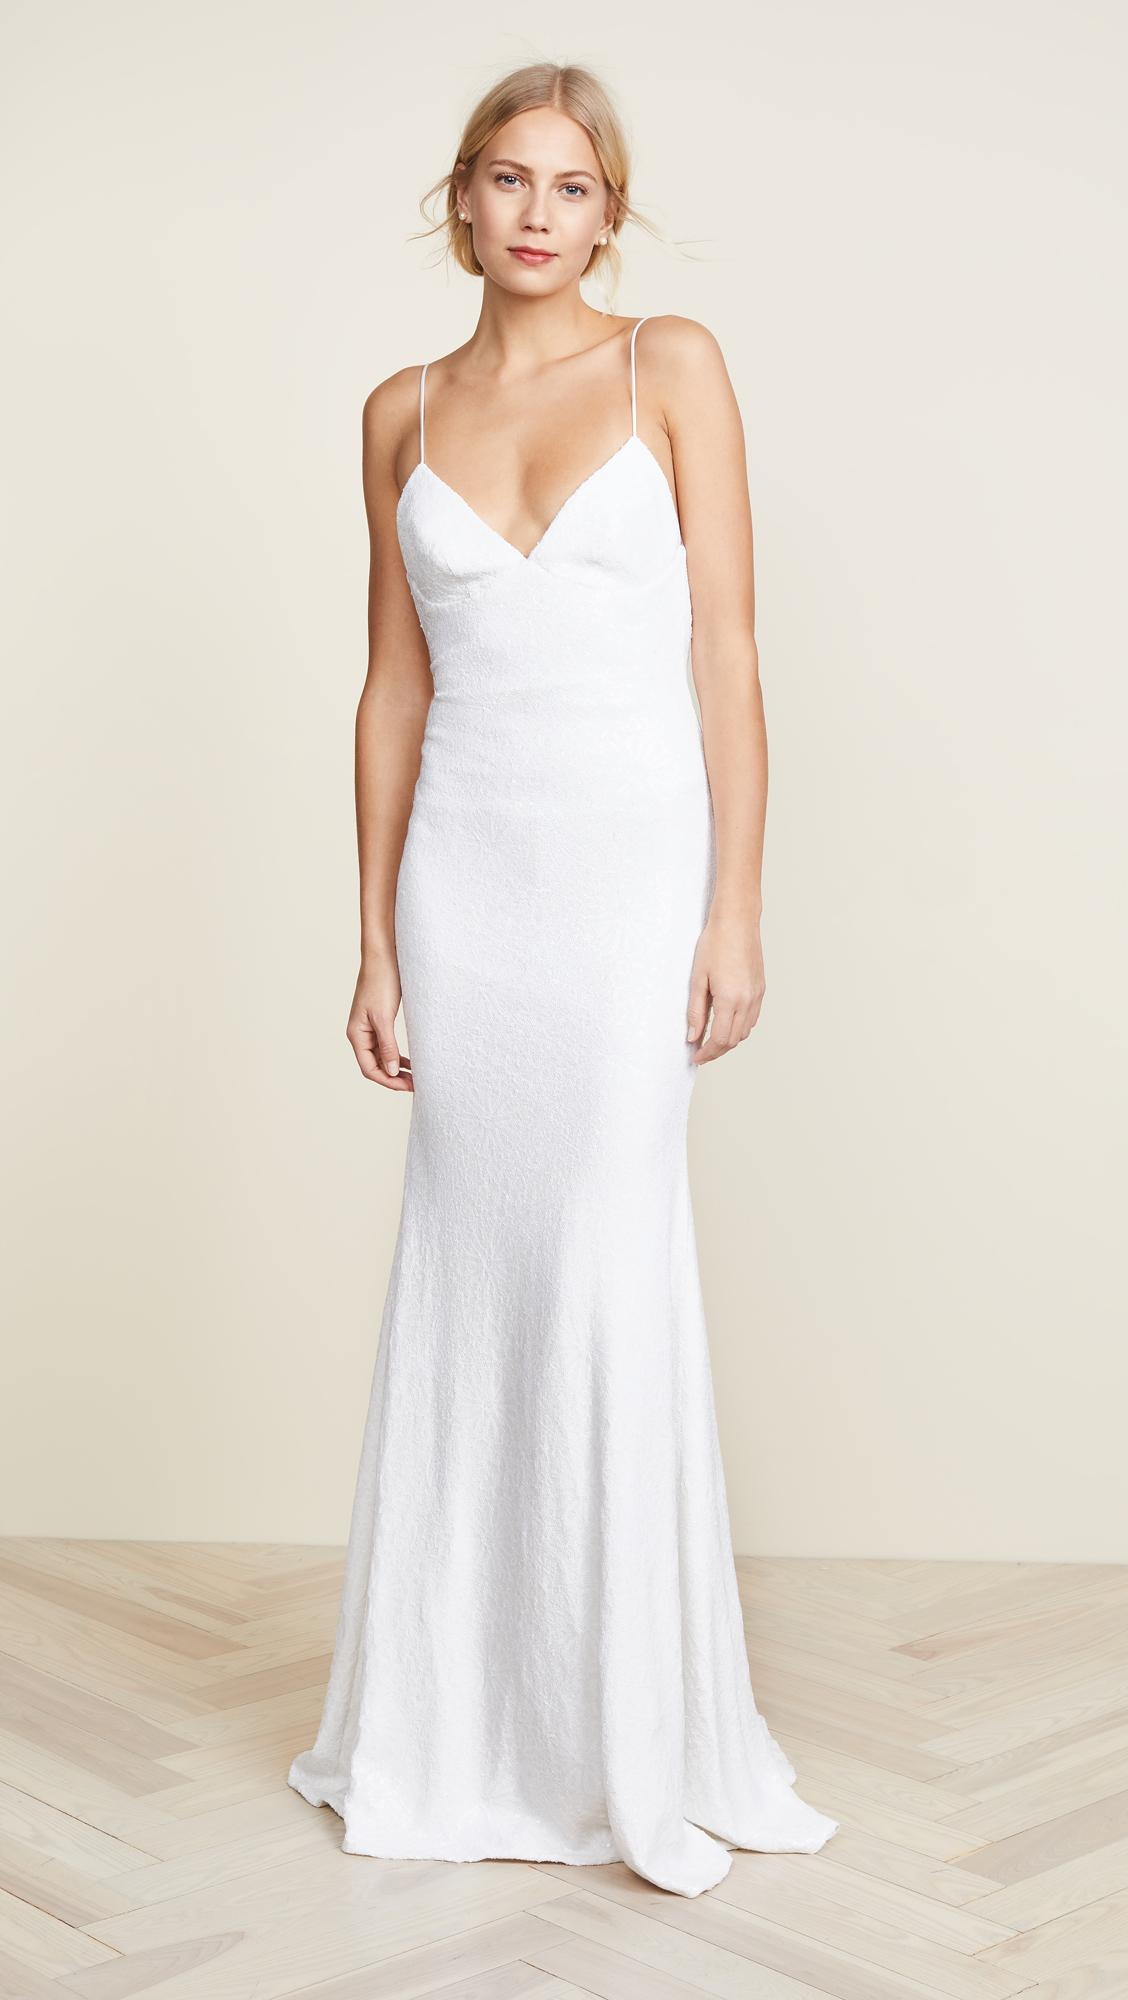 Lyst - Katie May Sequence Naked Lanai Gown in White